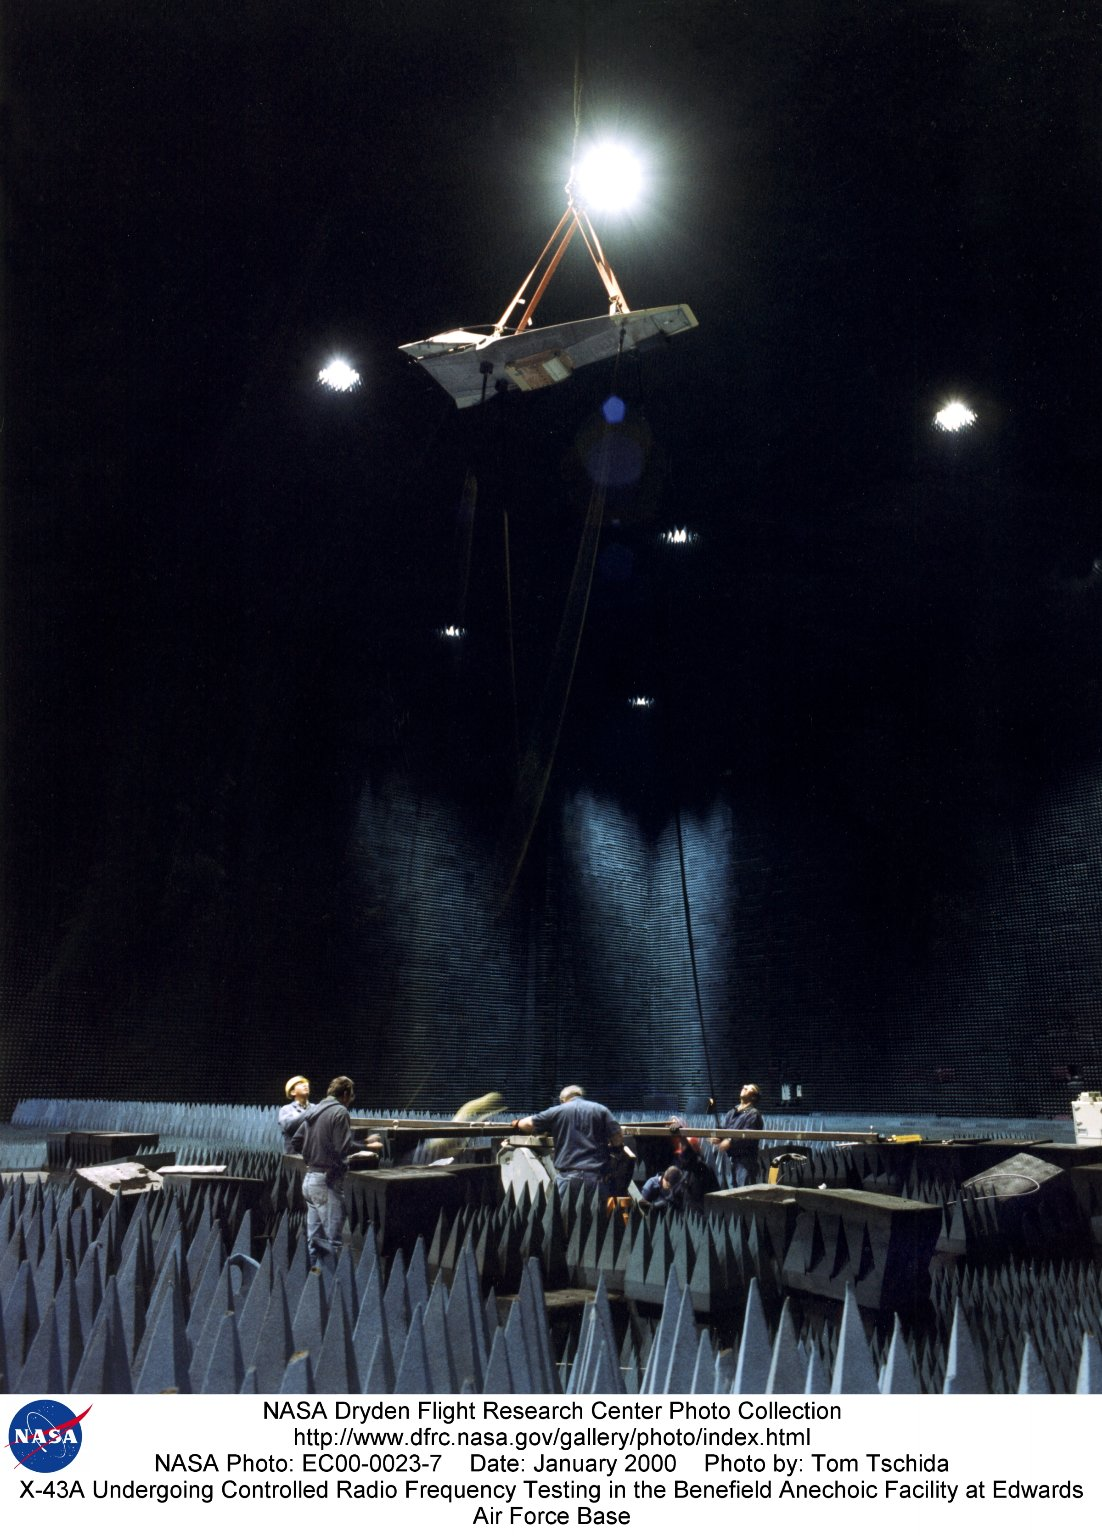 X-43A Undergoing Controlled Radio Frequency Testing in the Benefield Anechoic Facility at Edwards Ai